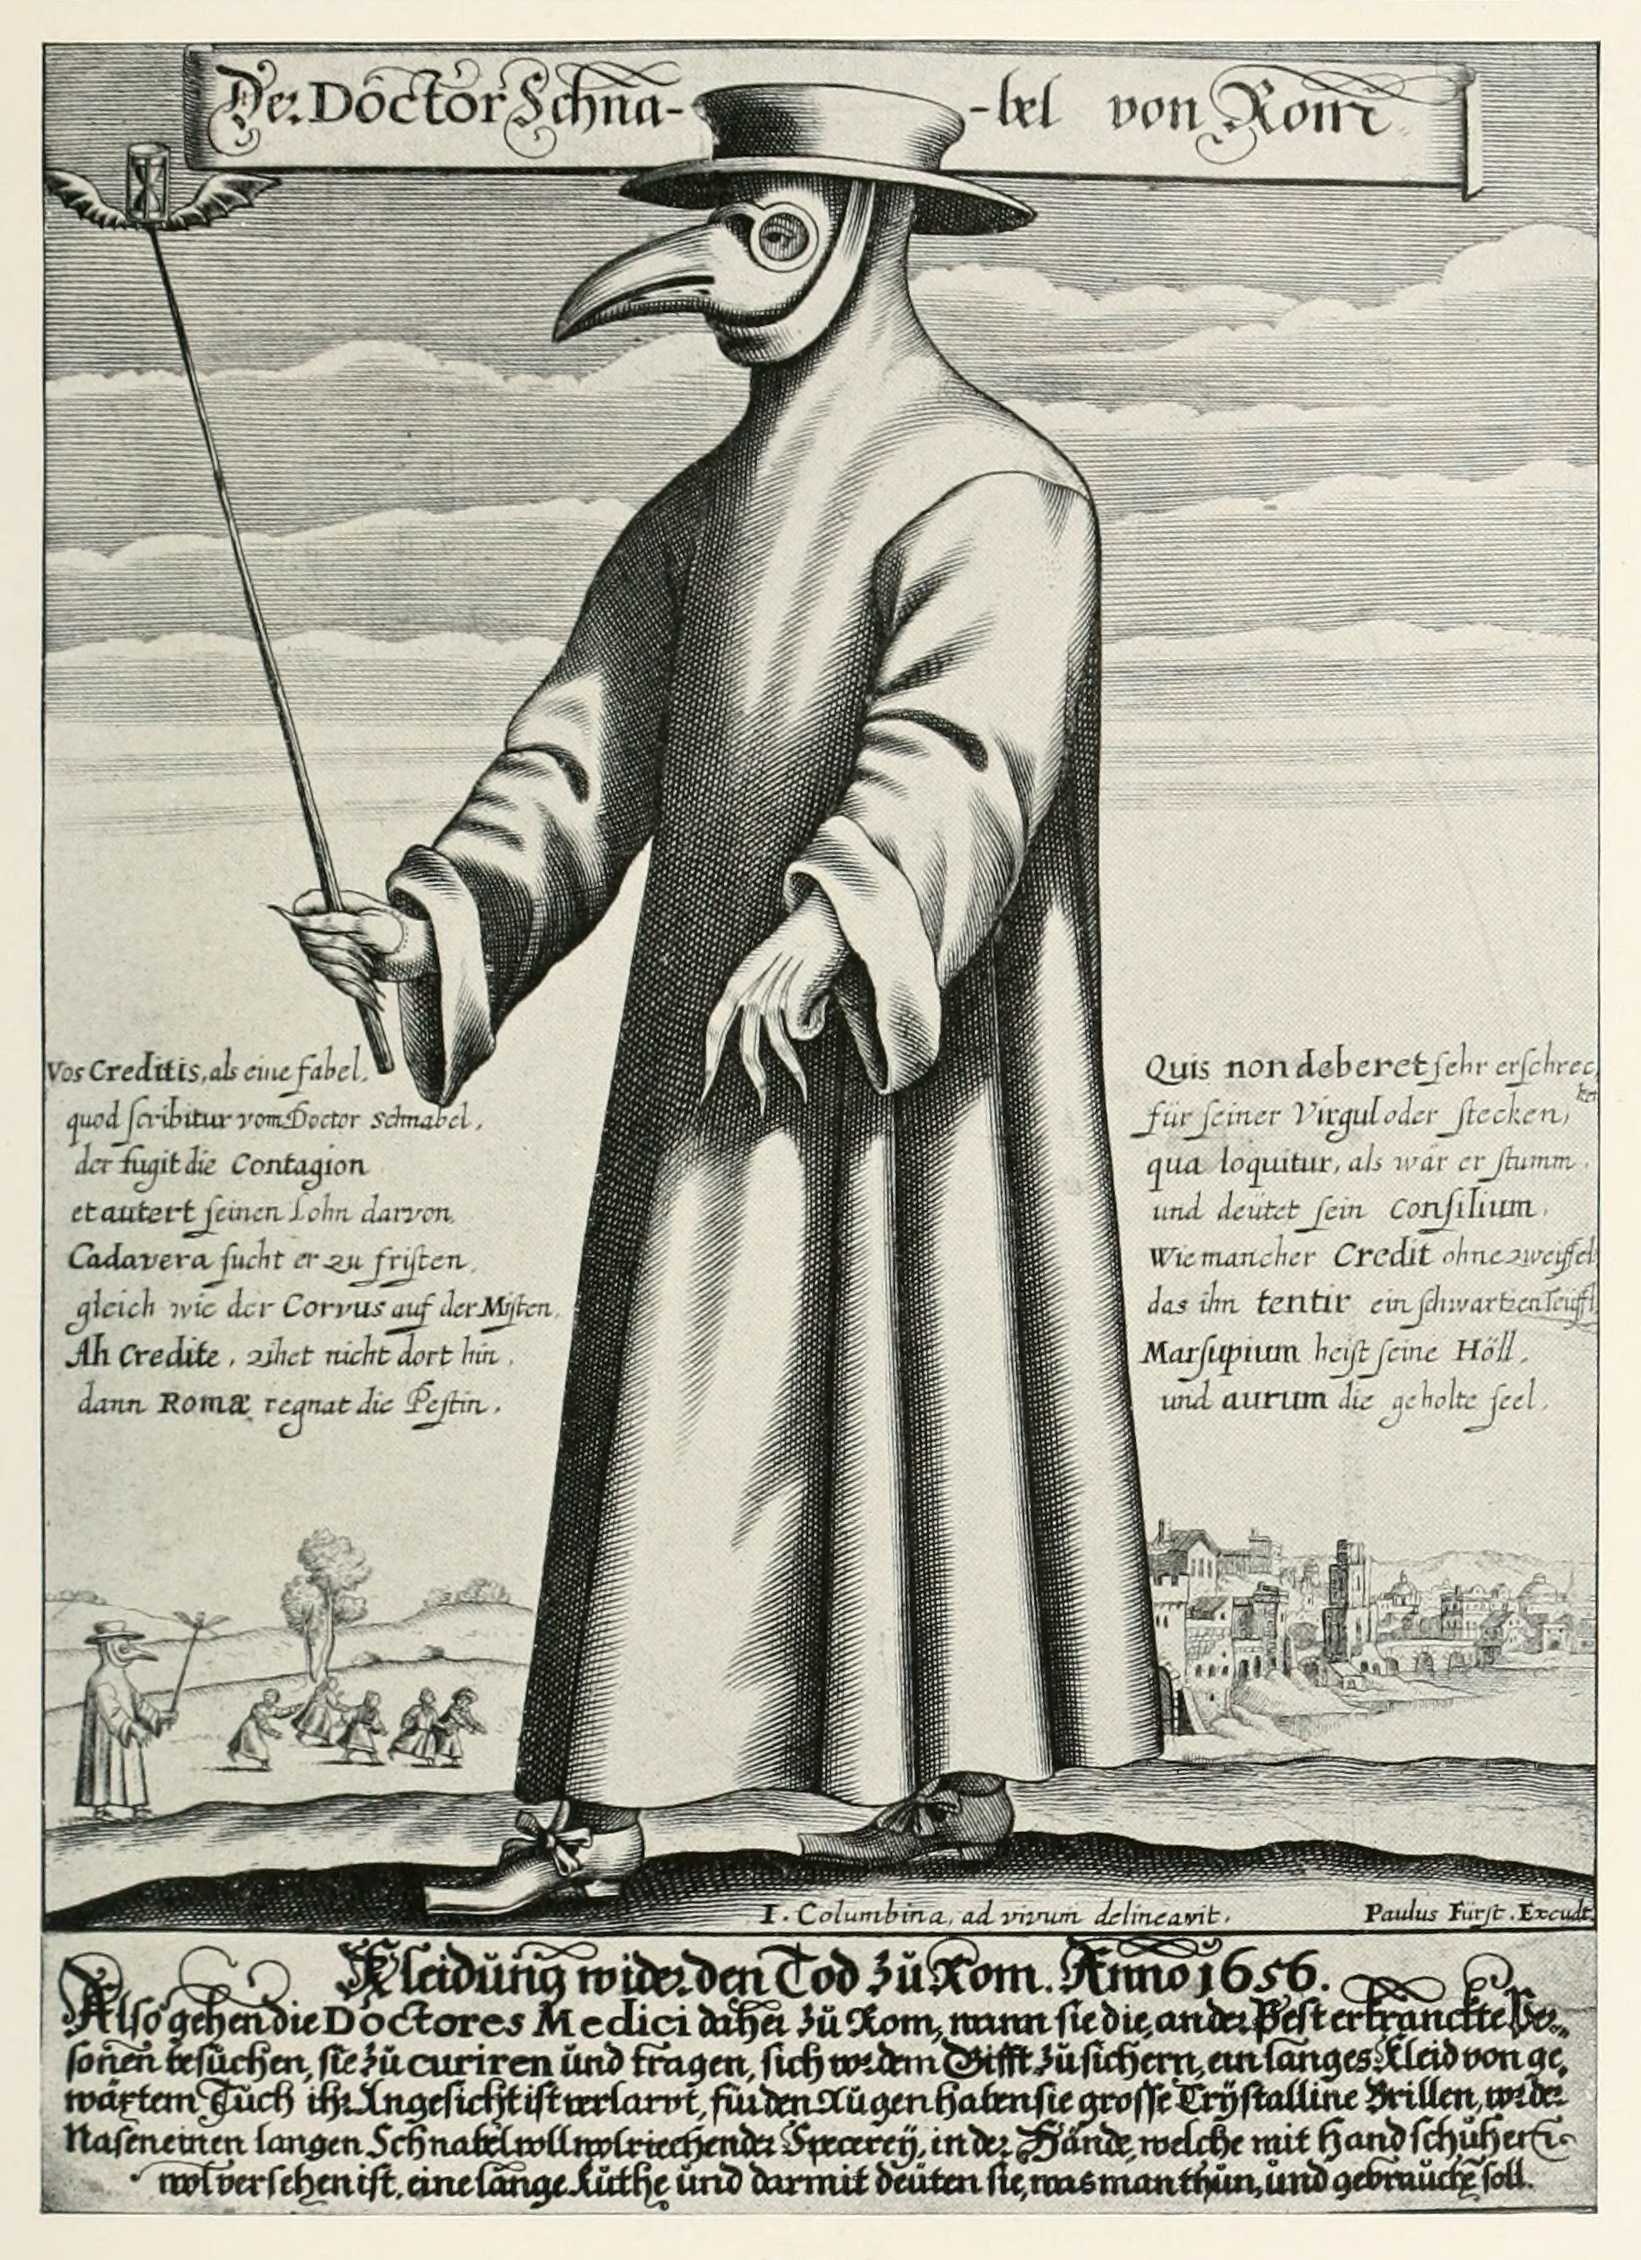 An image of a plague doctor wearing the traditional coat, mask, and hat.